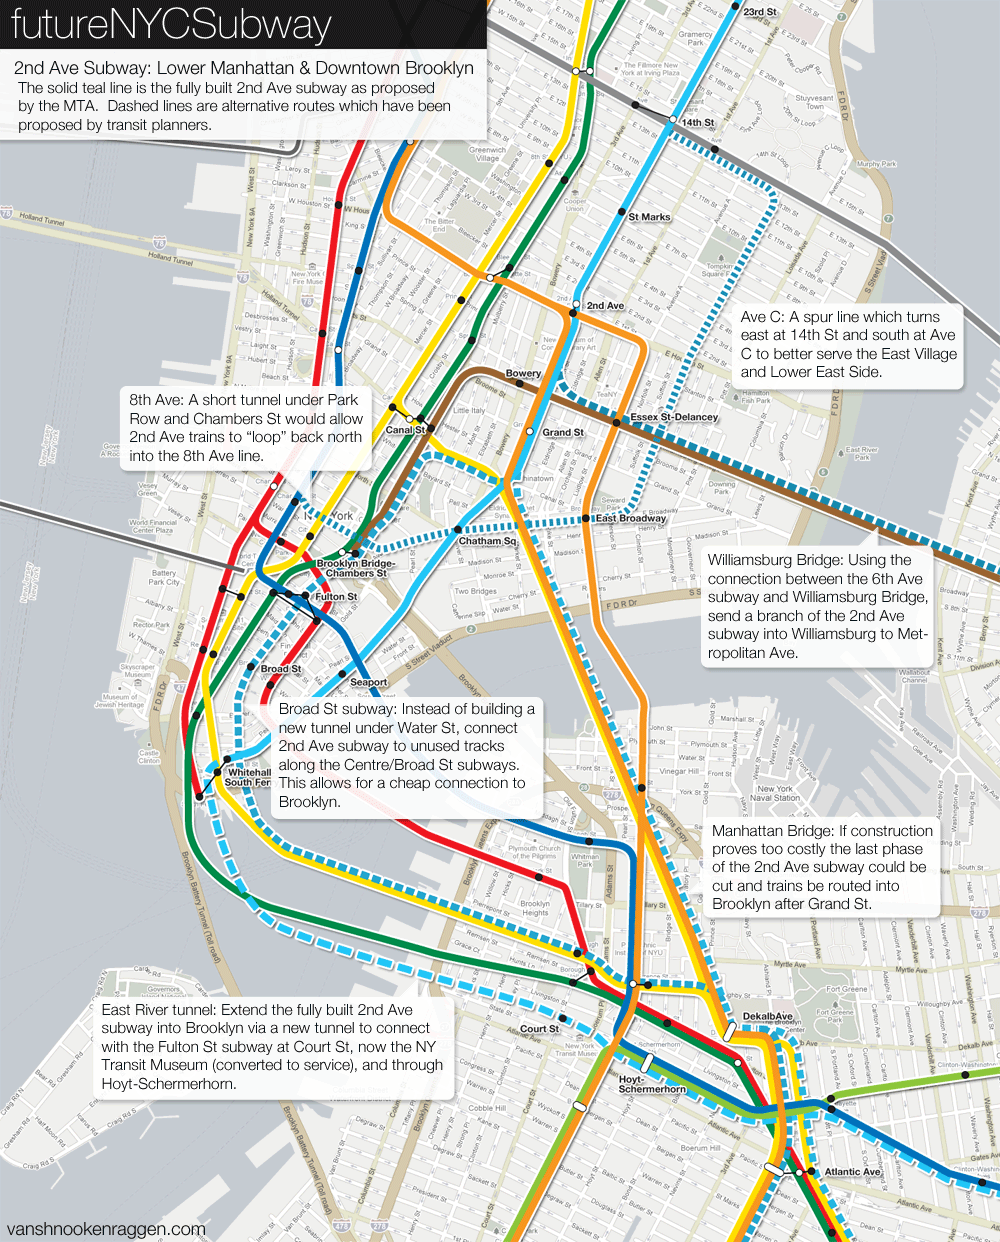 New Second Ave Subway Map.The Futurenycsubway 2nd Ave Subway Future Vanshnookenraggen